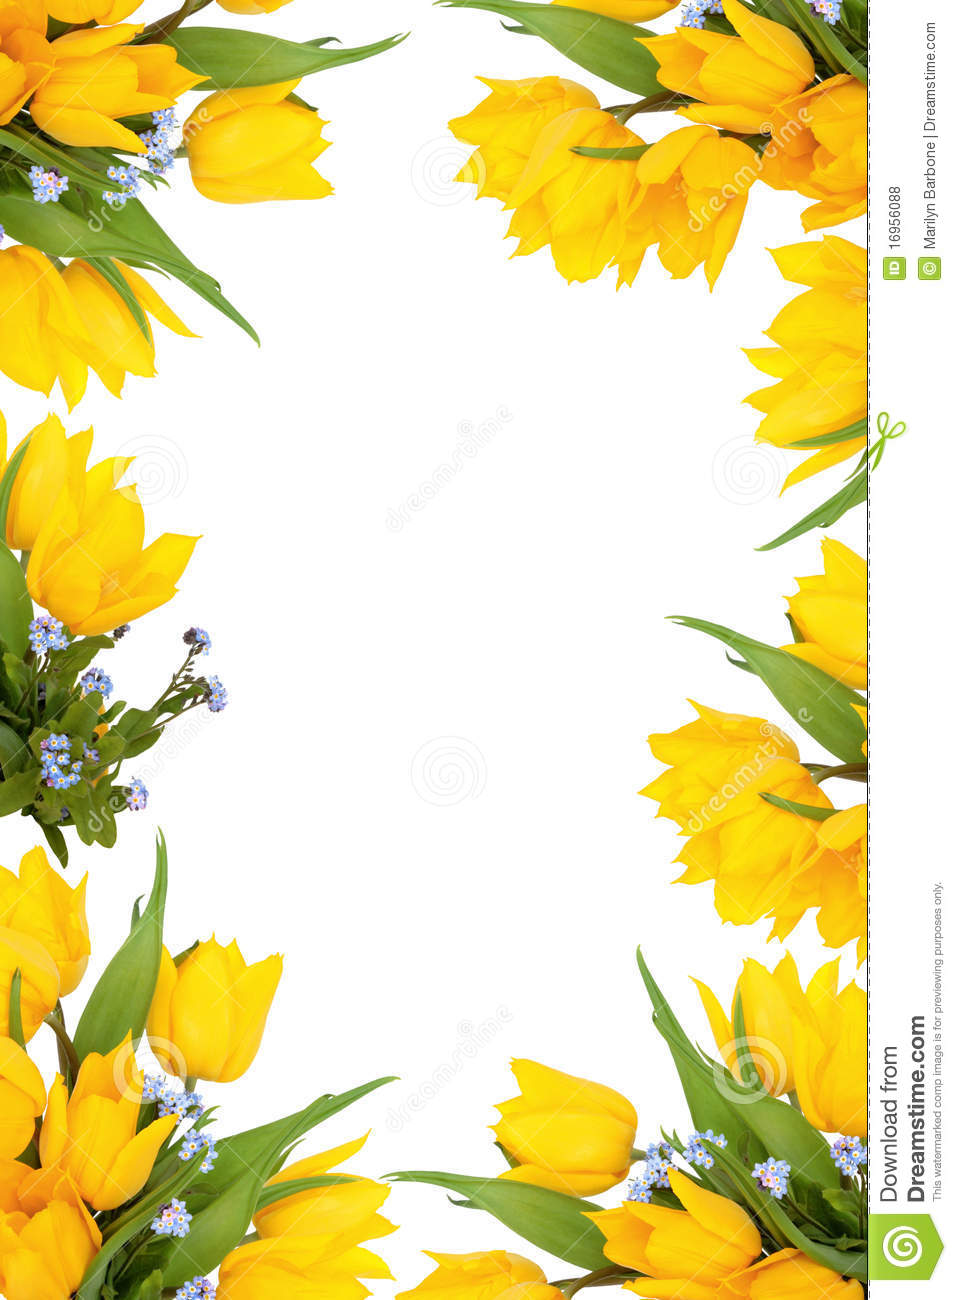 Spring flower frame stock photo image of hope leaves 16956088 spring flower frame mightylinksfo